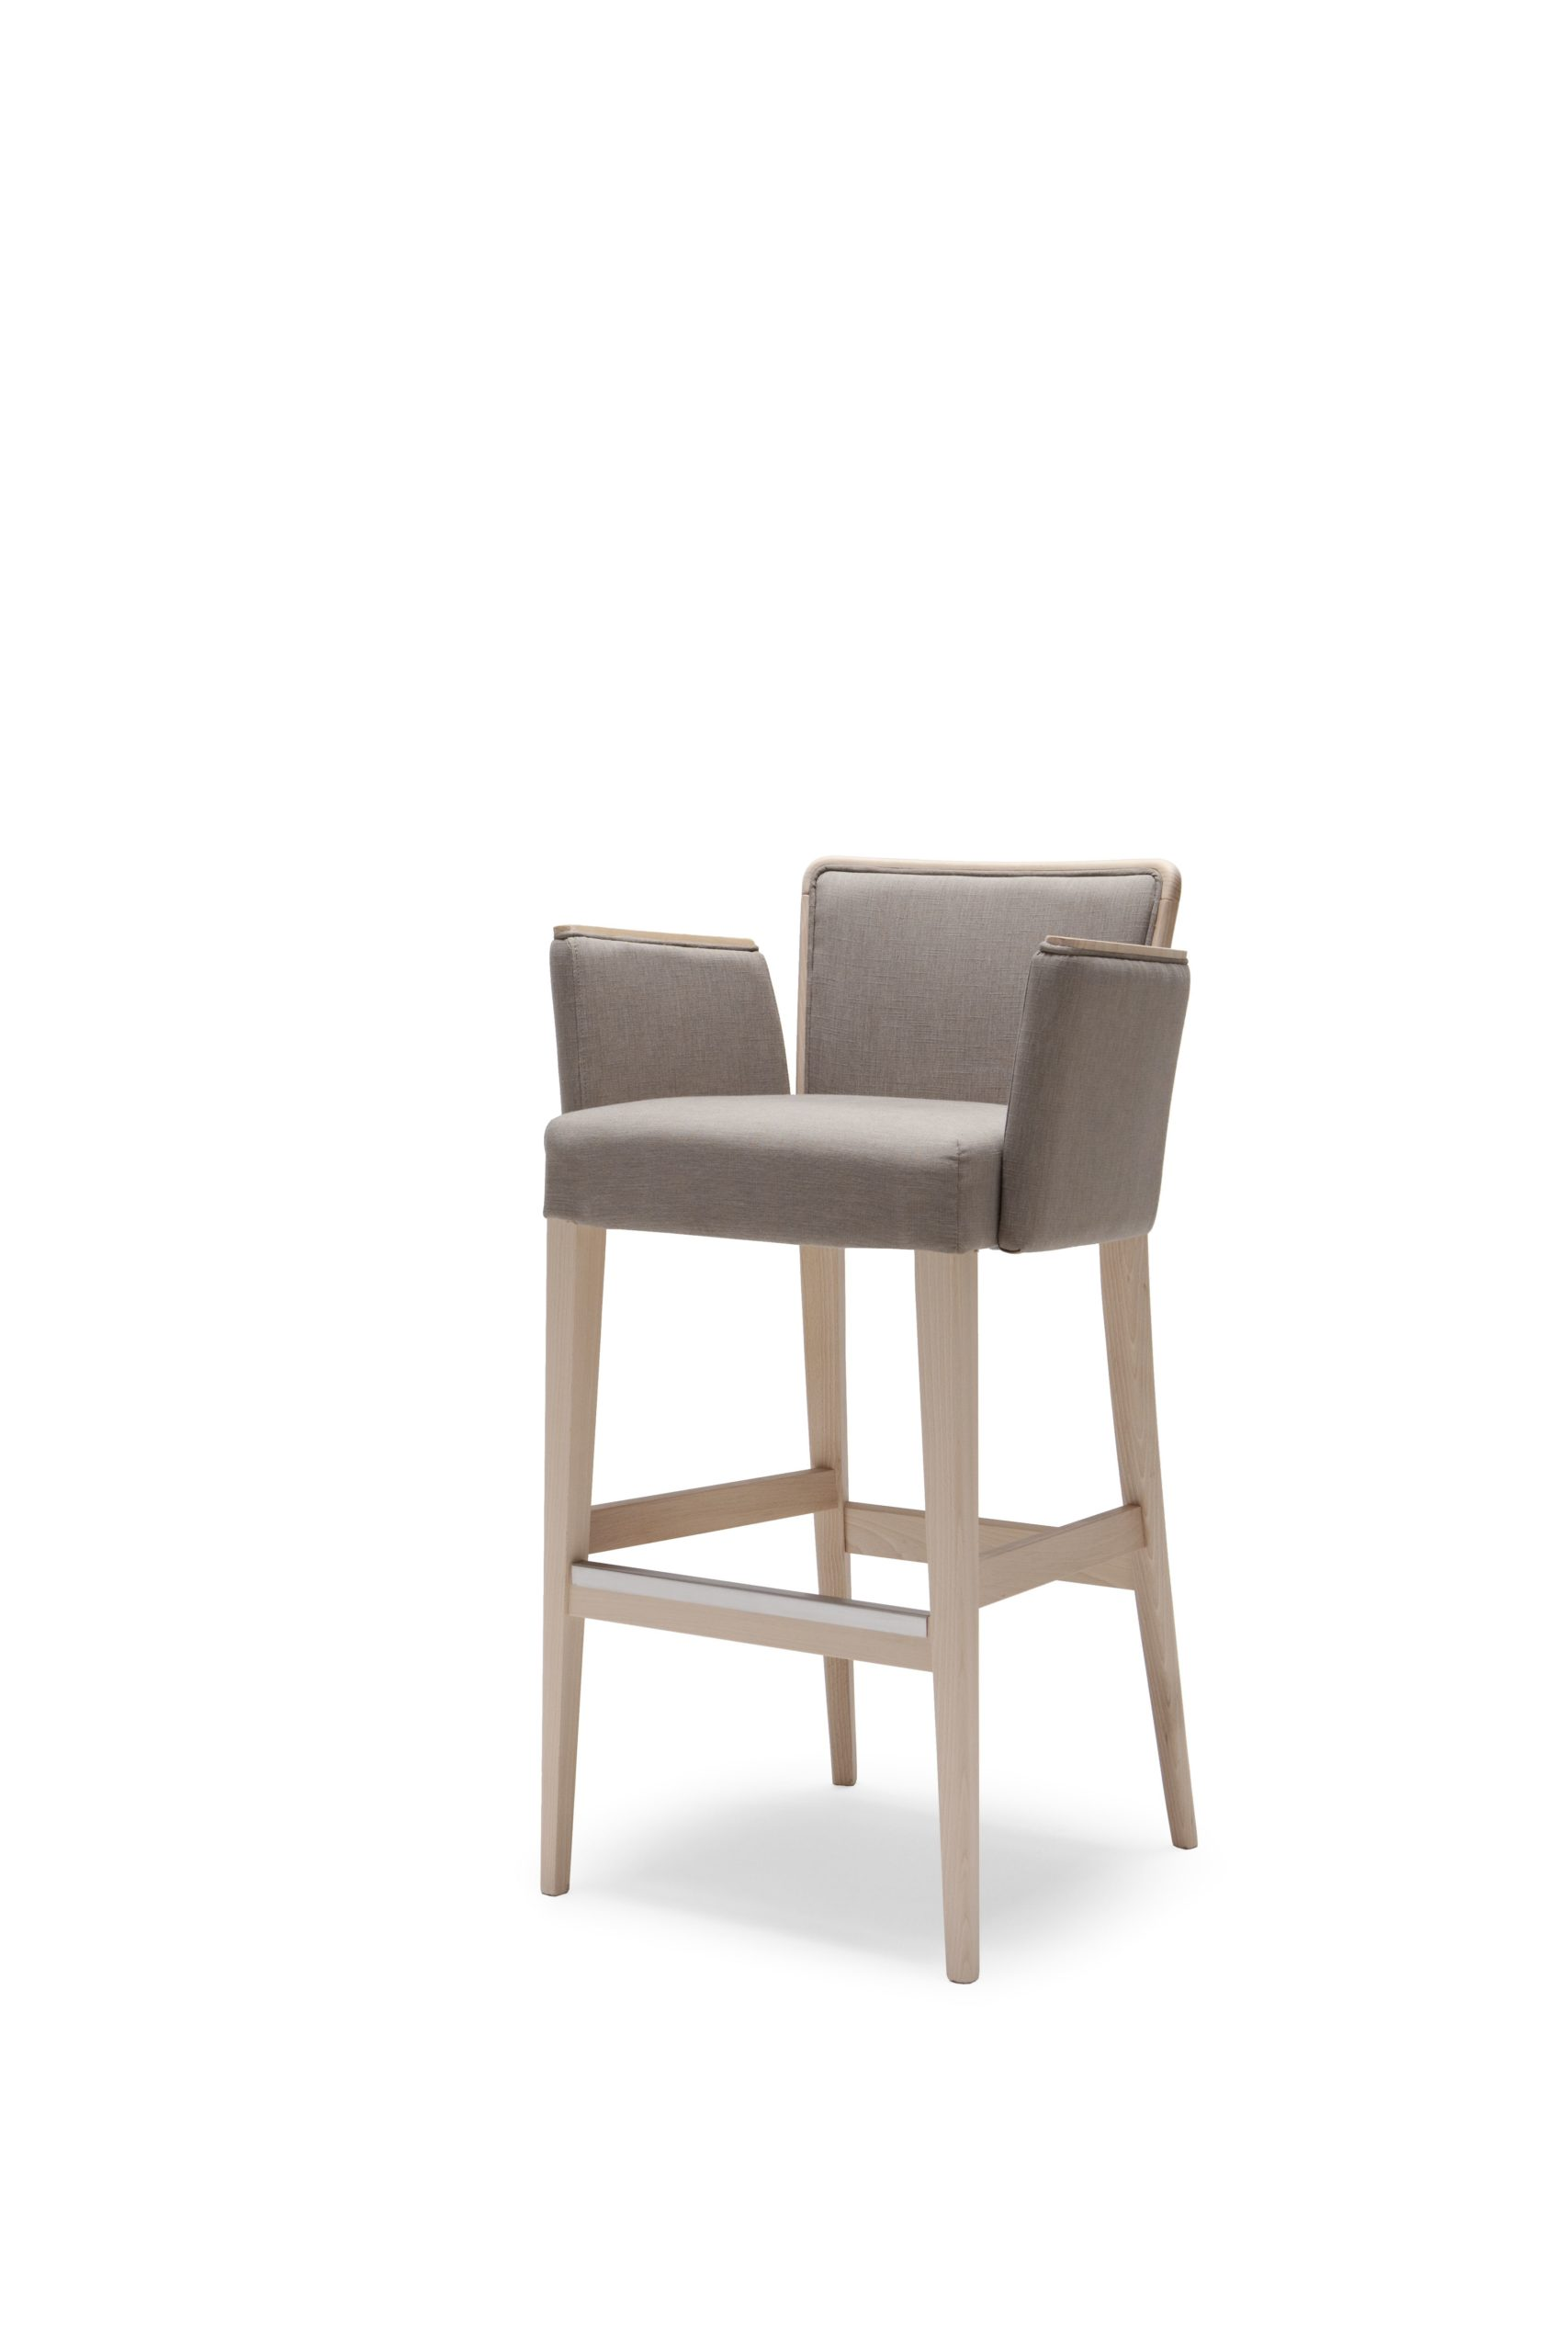 Noblesse 227 Bar Stool Arms Stax Chairs